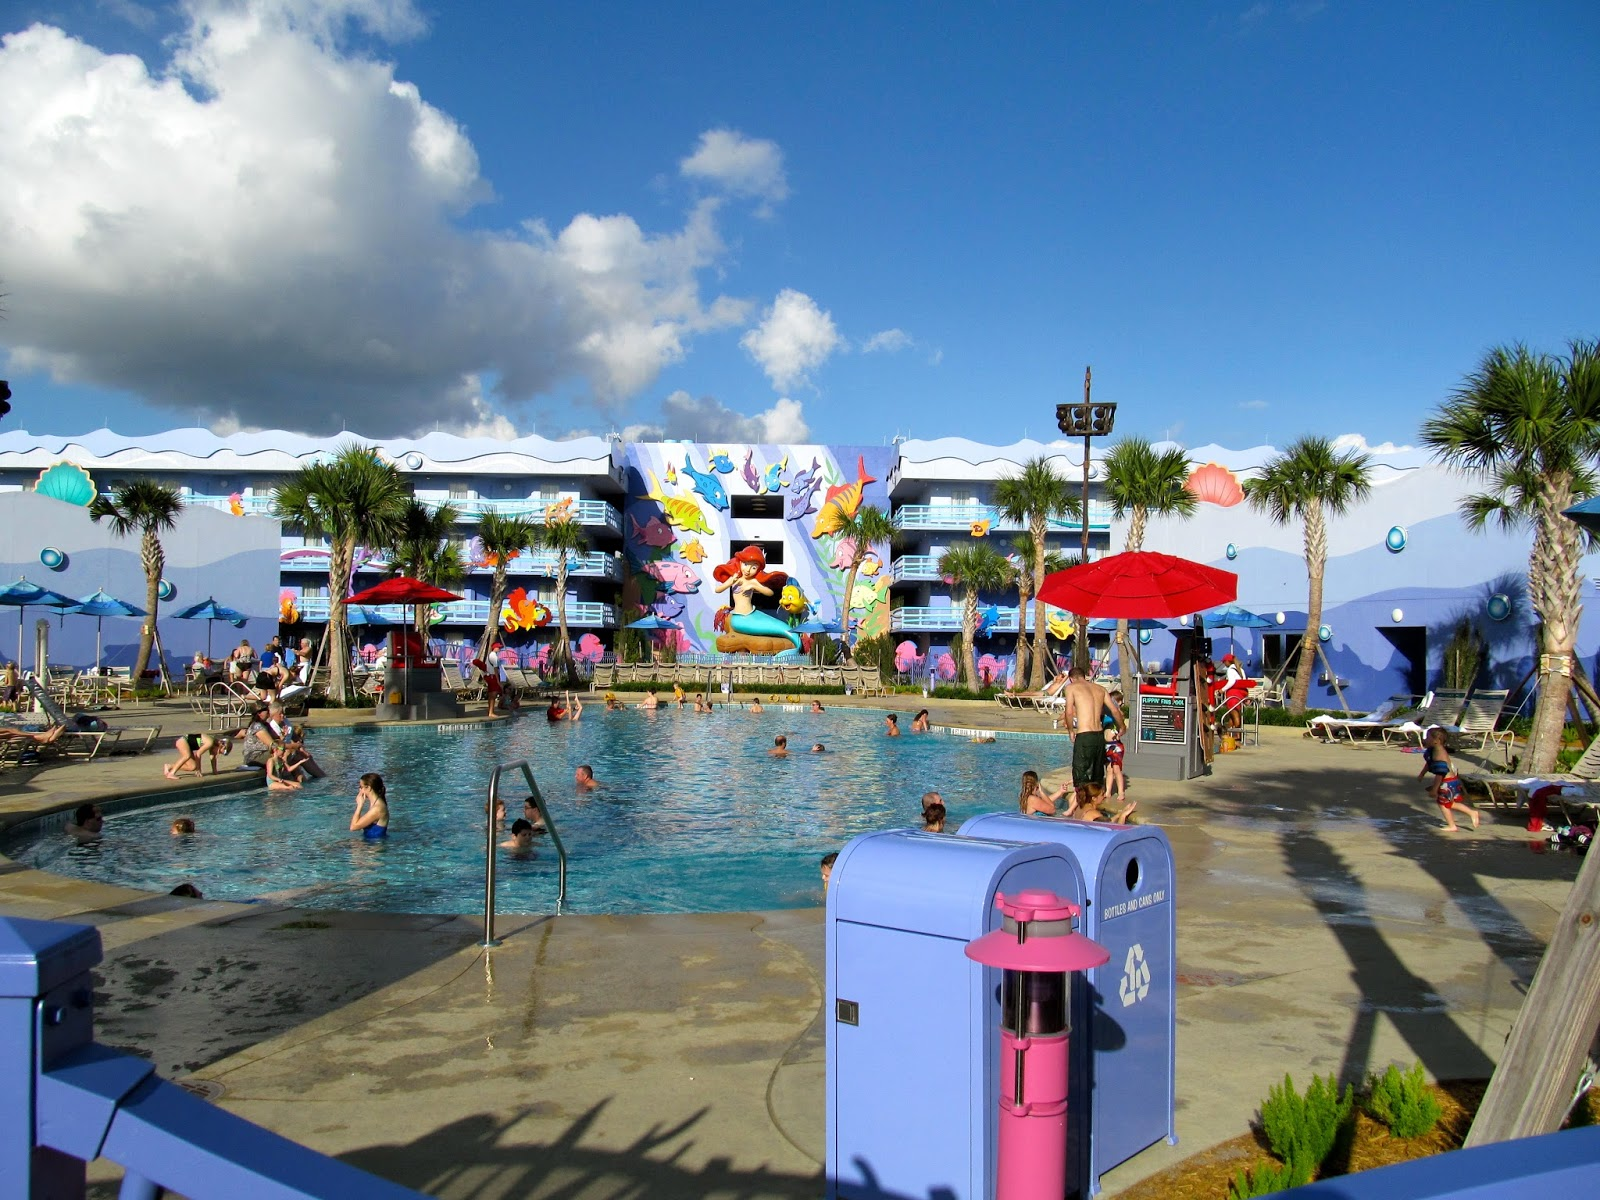 Little Mermaid Area at The Art of Animation Resort